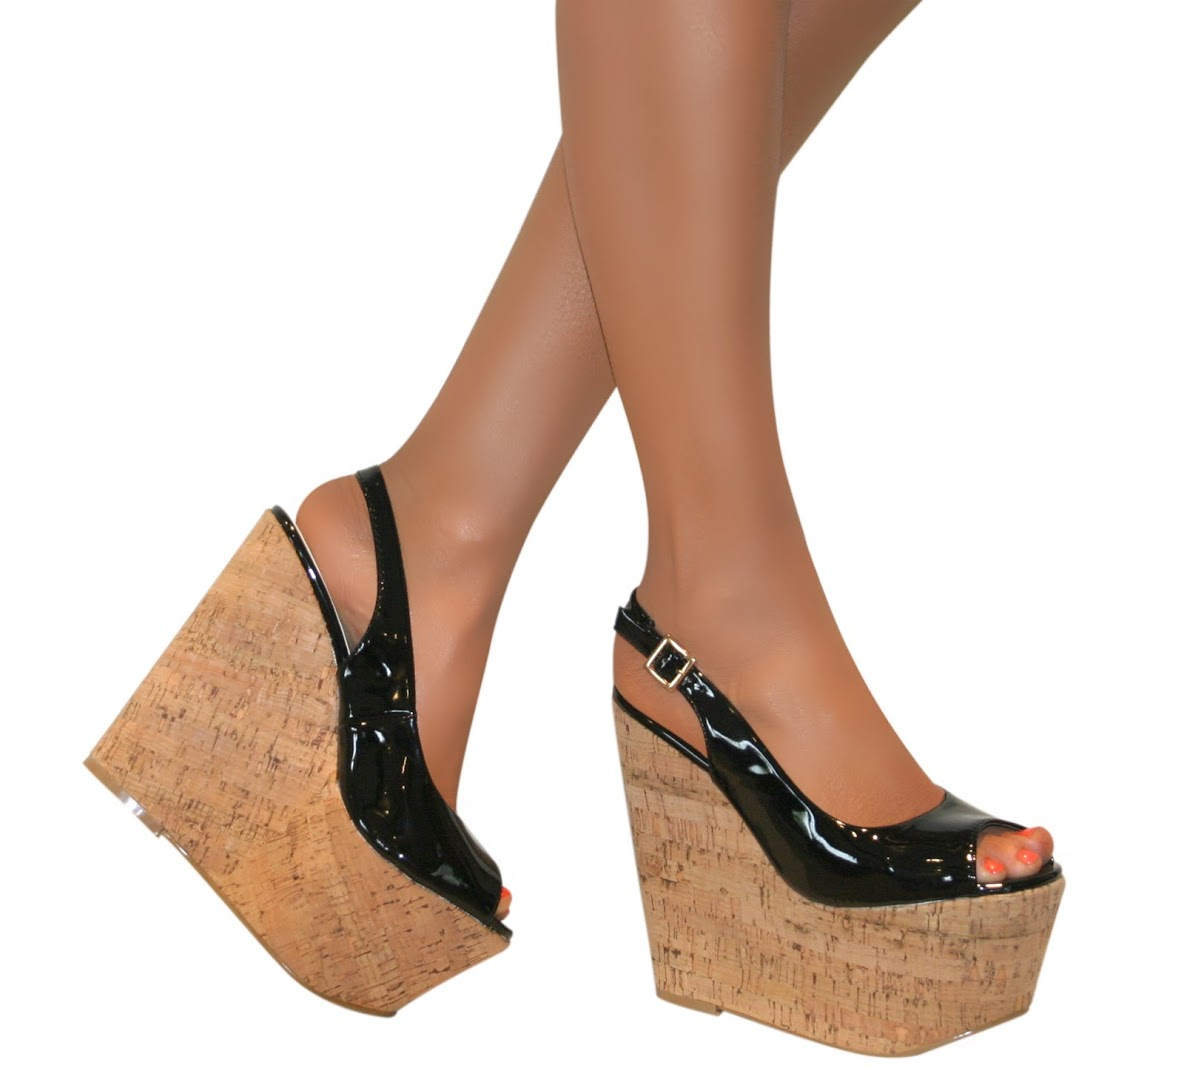 High Platform Wedge Pumps Shoes